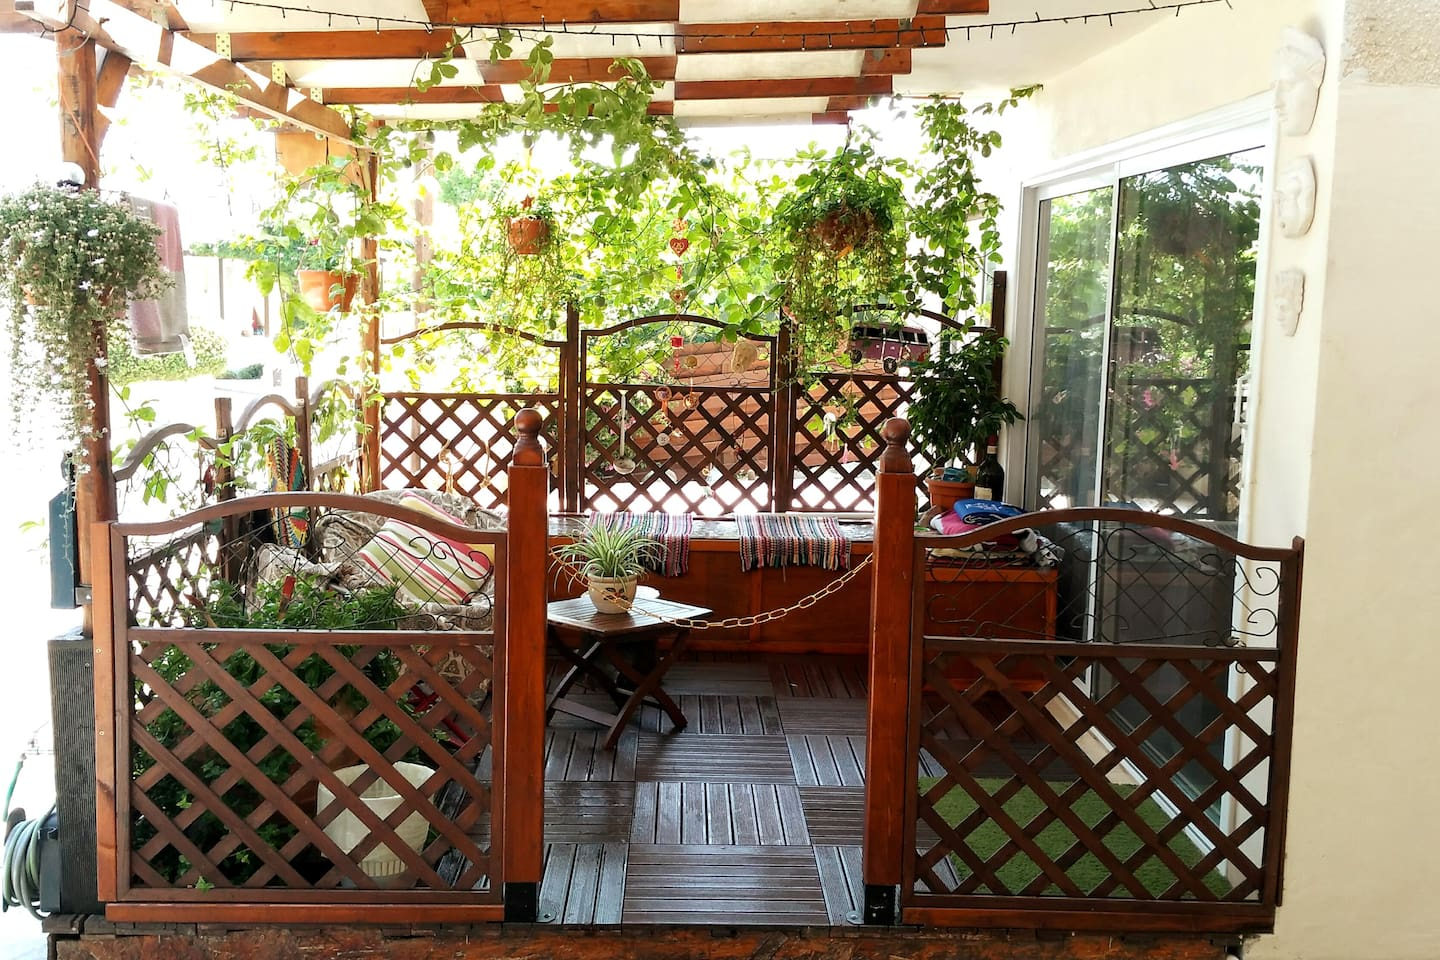 Private Verandah covered in Passion Fruit vines